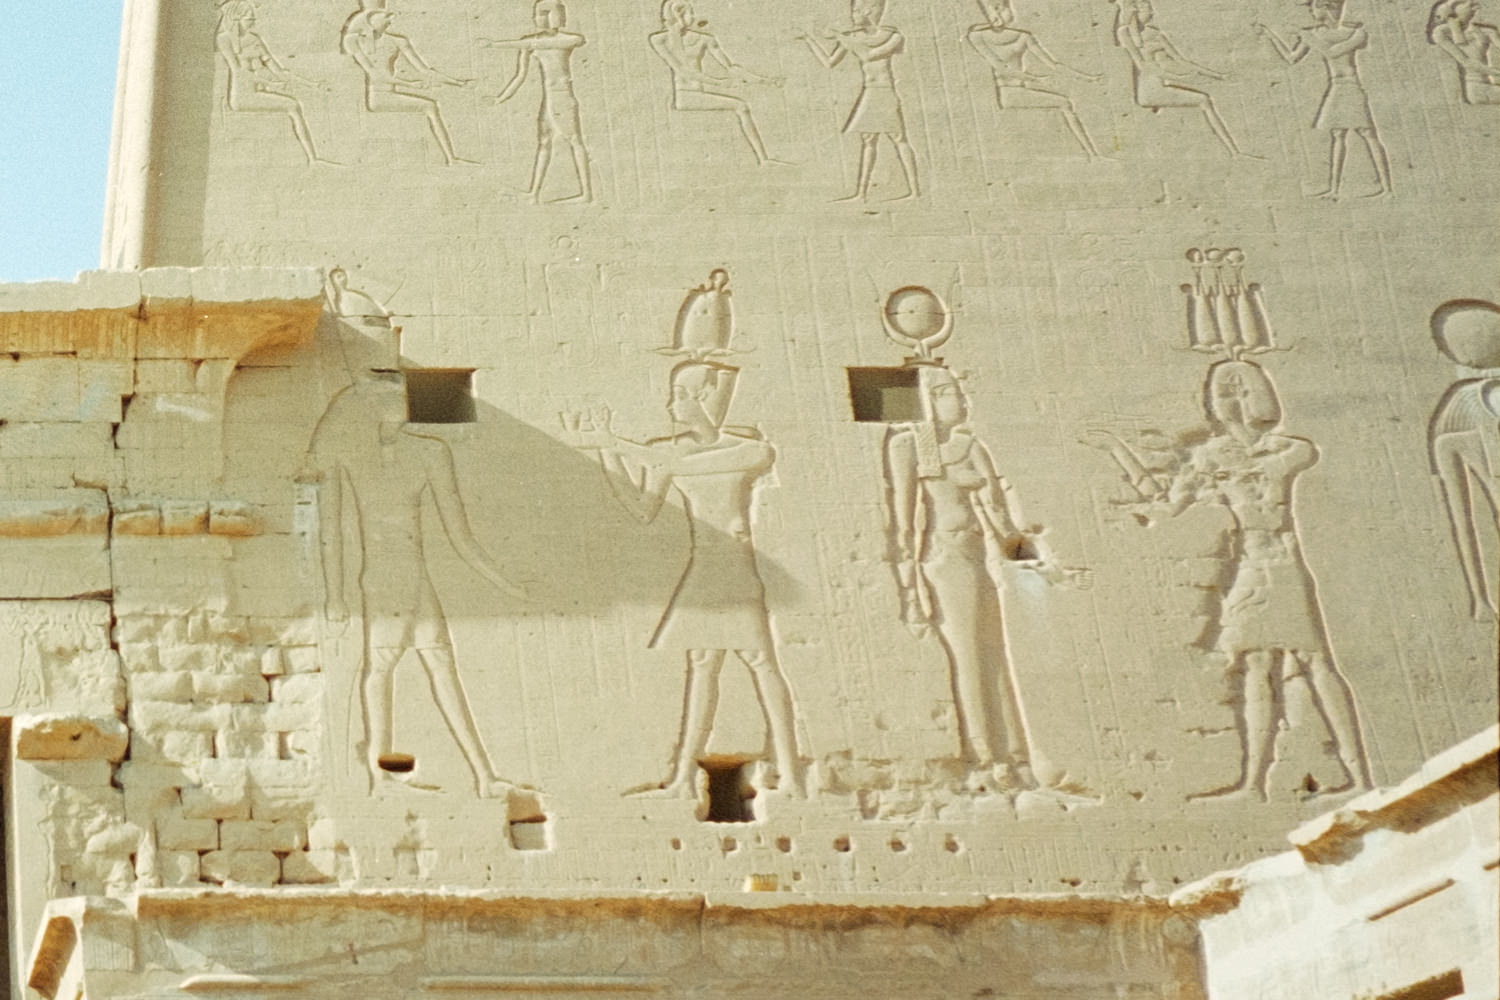 A close-up of carvings on the walls of Edfu temple showing various deities and pharaohs, including Isis